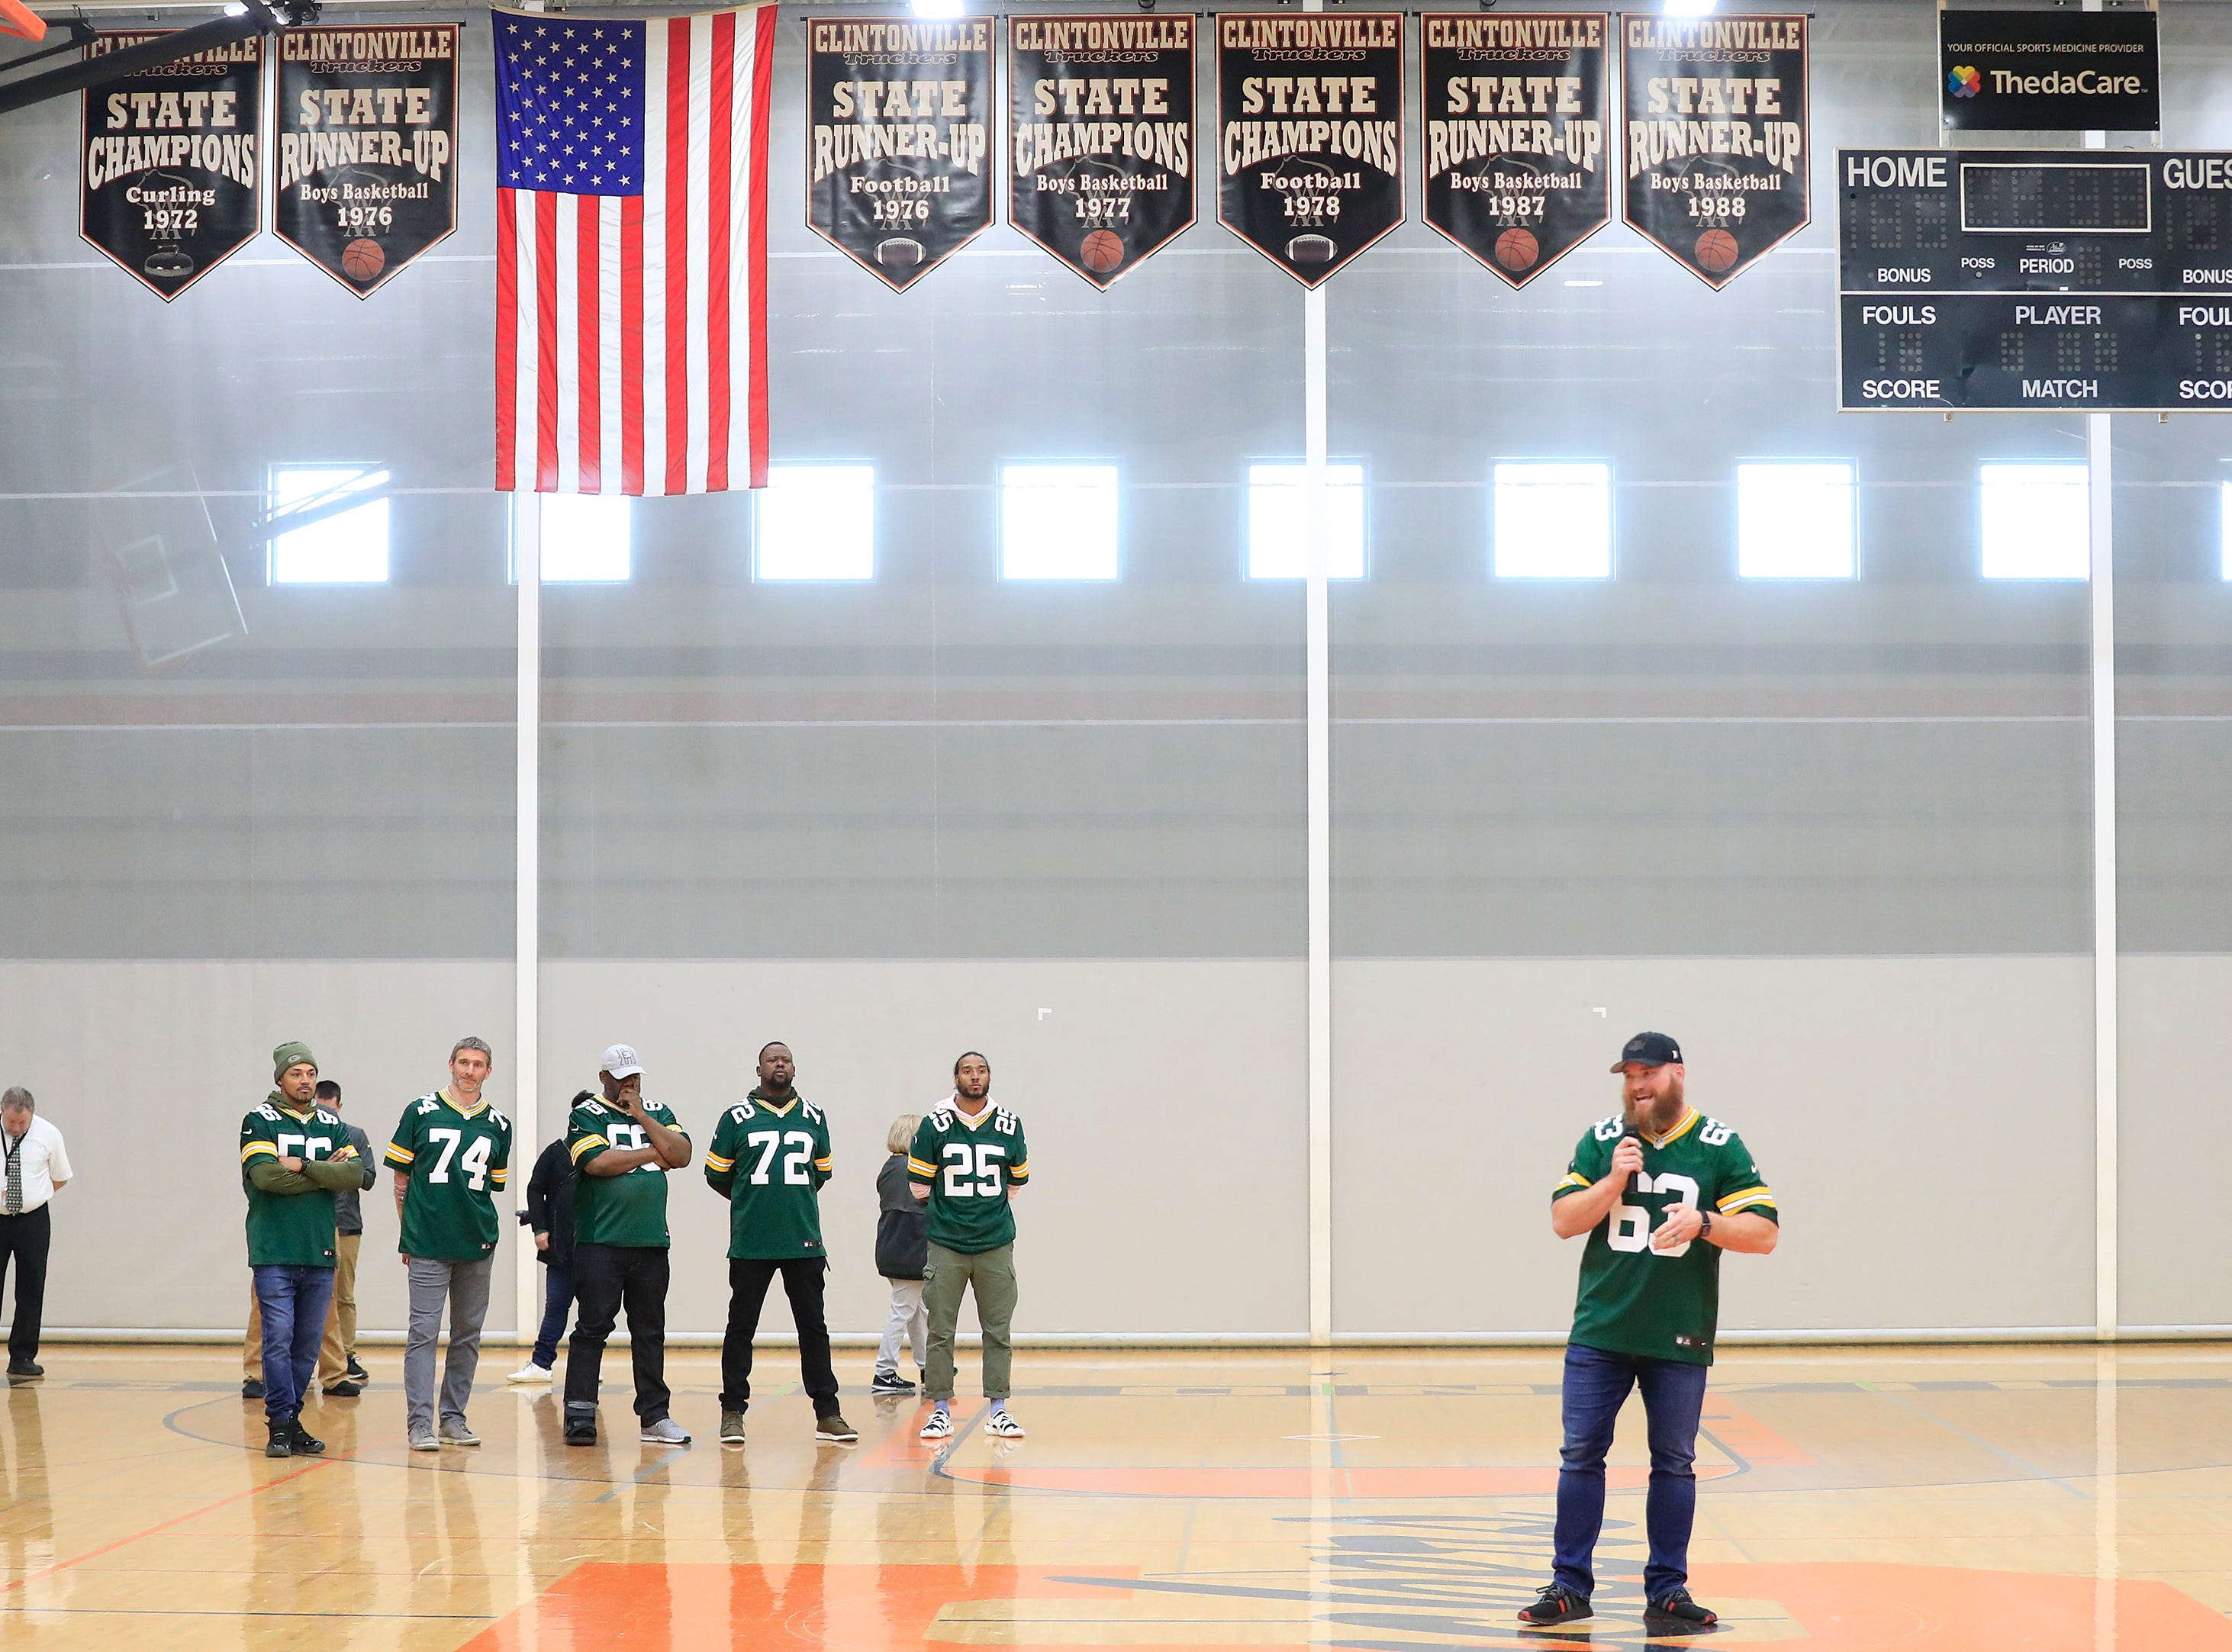 Former Green Bay Packers player Scott Wells speaks during a stop on the Packers Tailgate Tour at Clintonville High School on Tuesday, April 9, 2019 in Clintonville, Wis.